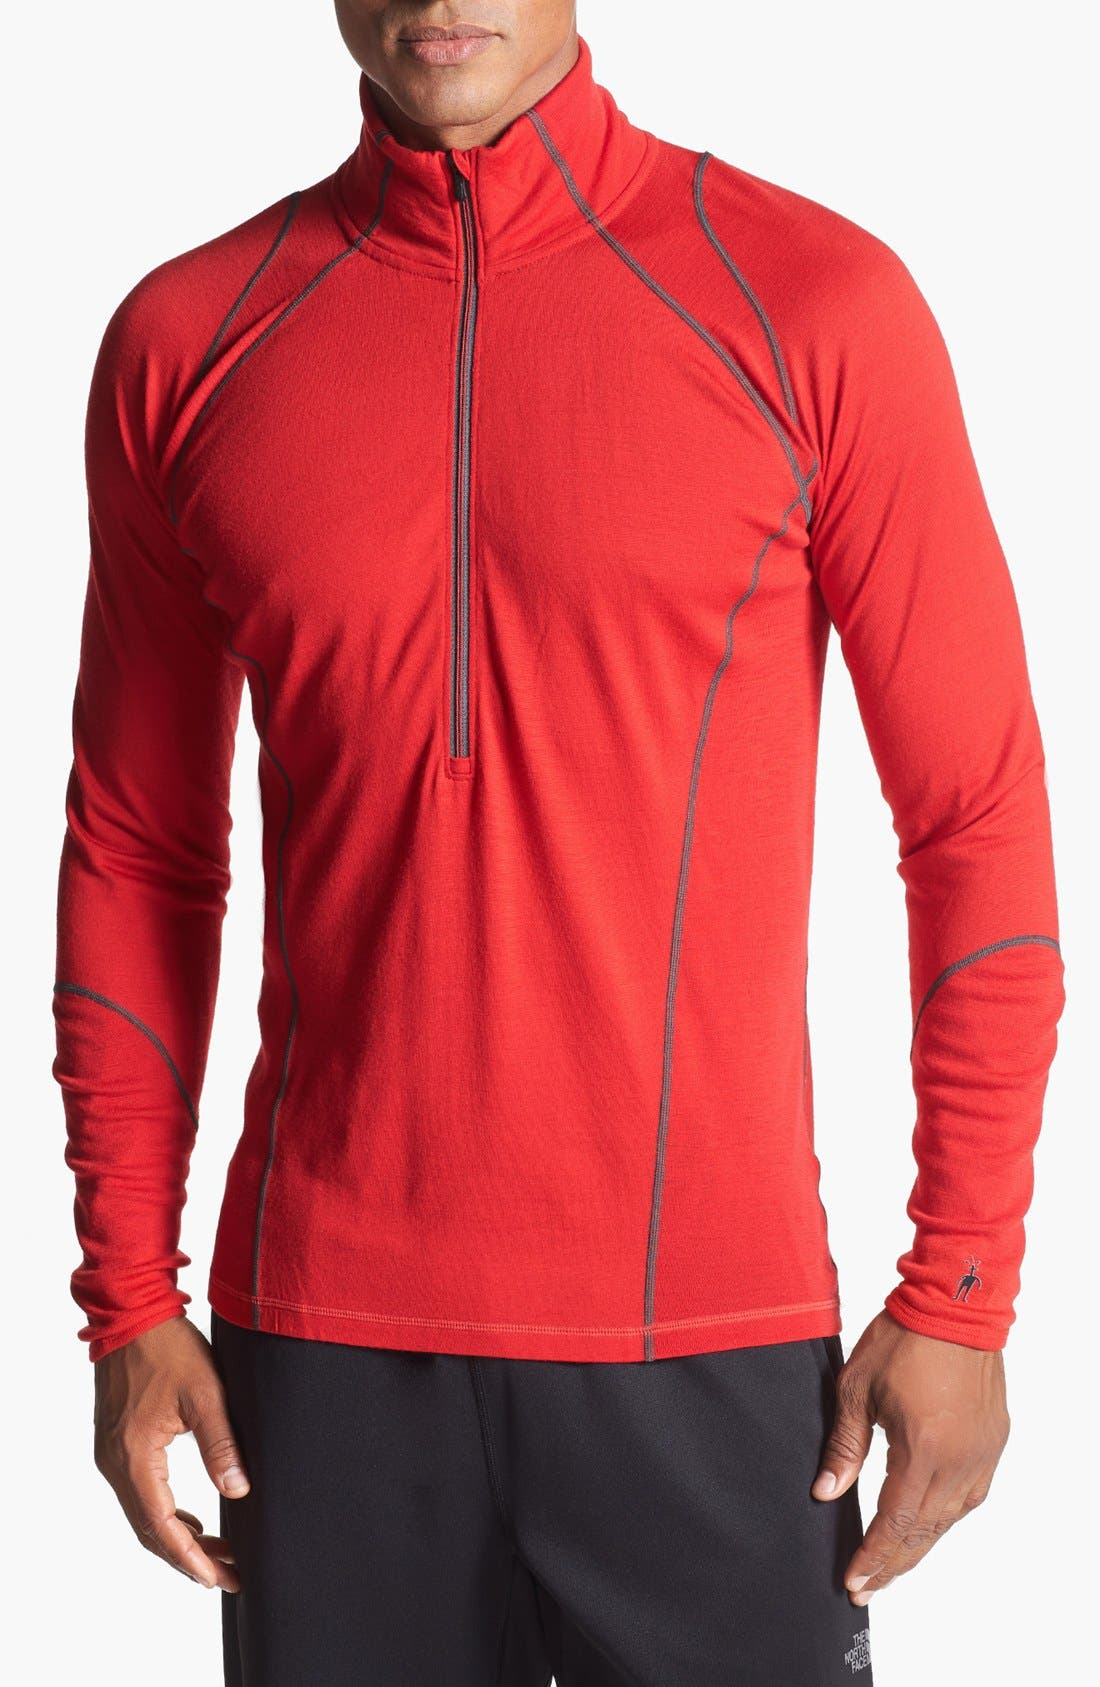 Main Image - Smartwool Lightweight Long Sleeve Performance Top